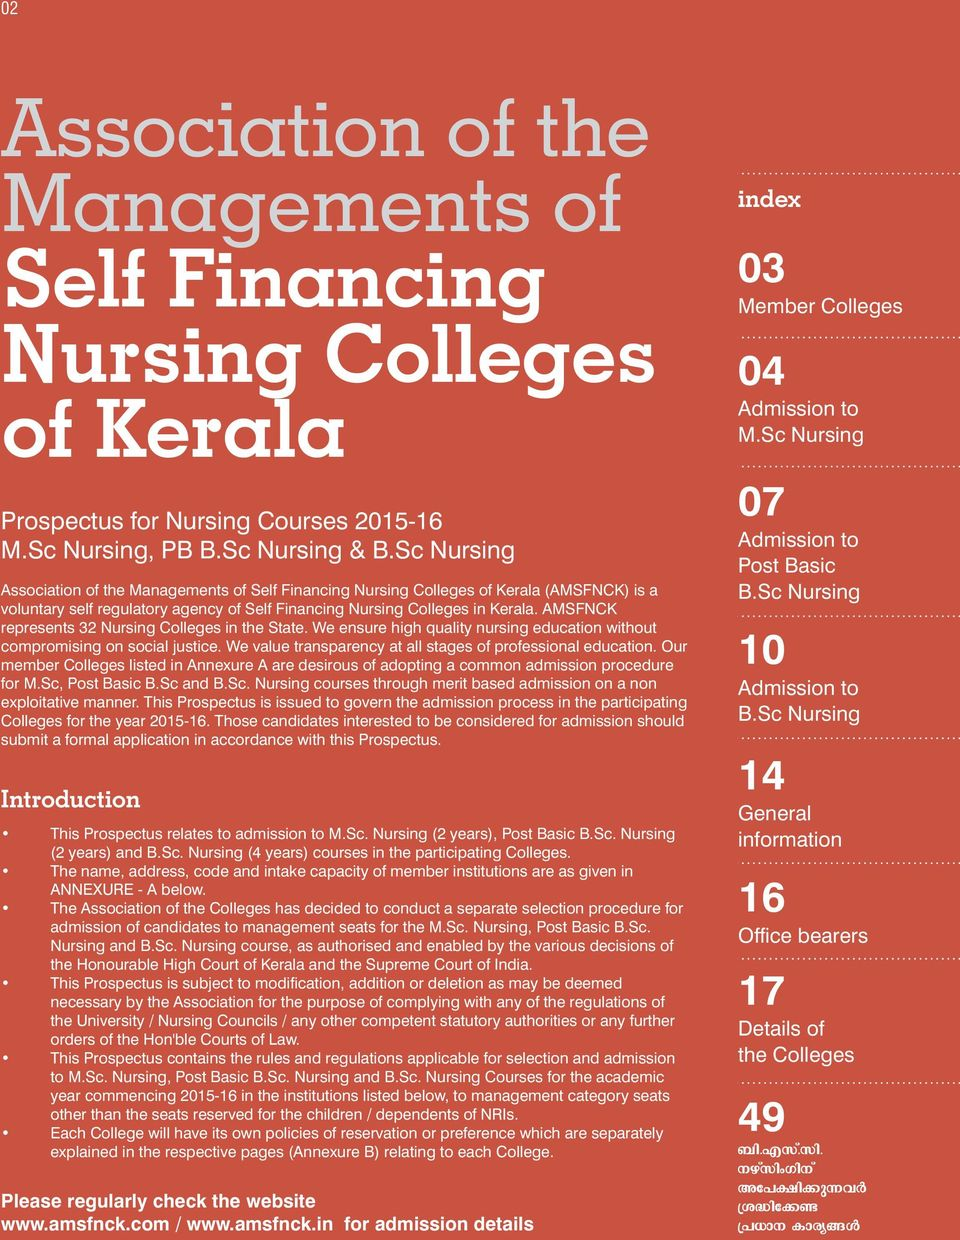 AMSFNCK represents 32 Nursing Colleges in the State. We ensure high quality nursing education without compromising on social justice. We value transparency at all stages of professional education.